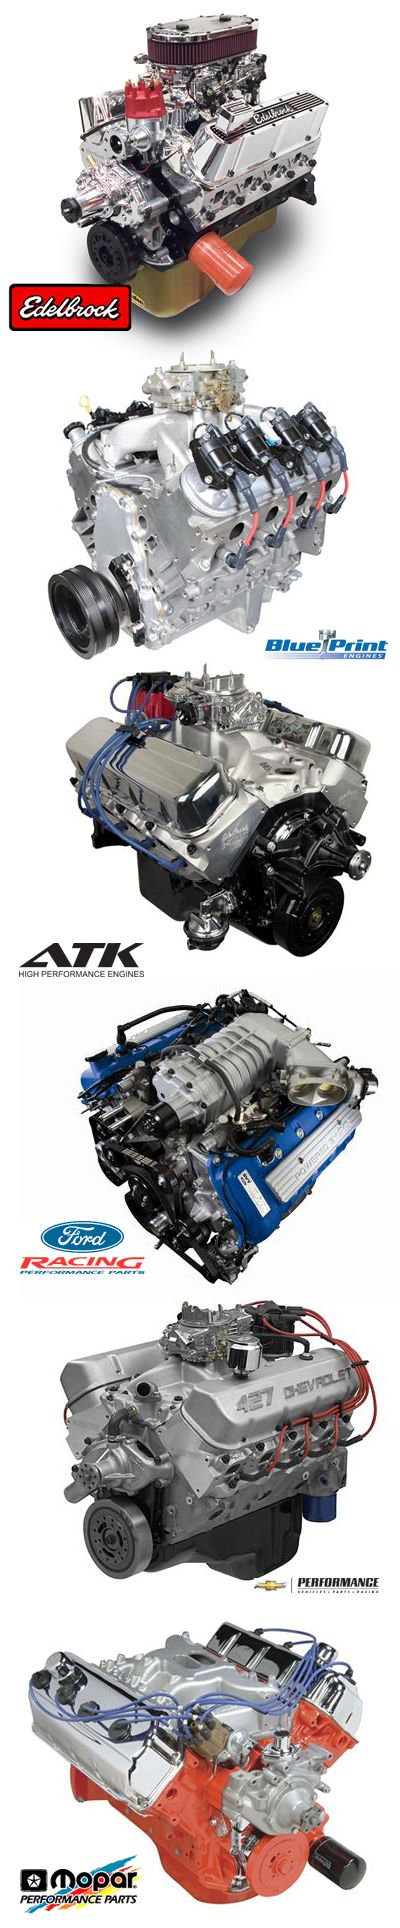 With crate engines from top brands like BluePrint Engines, Chevrolet Performance, Ford Racing, Mopar Performance, Edelbrock, and more, you are sure to find the complete long block assembly for your Chevy, Ford or Mopar. <<< repinned by www.BlickeDeeler.de   Follow us on #Facebook > www.facebook.com/BlickeDeeler